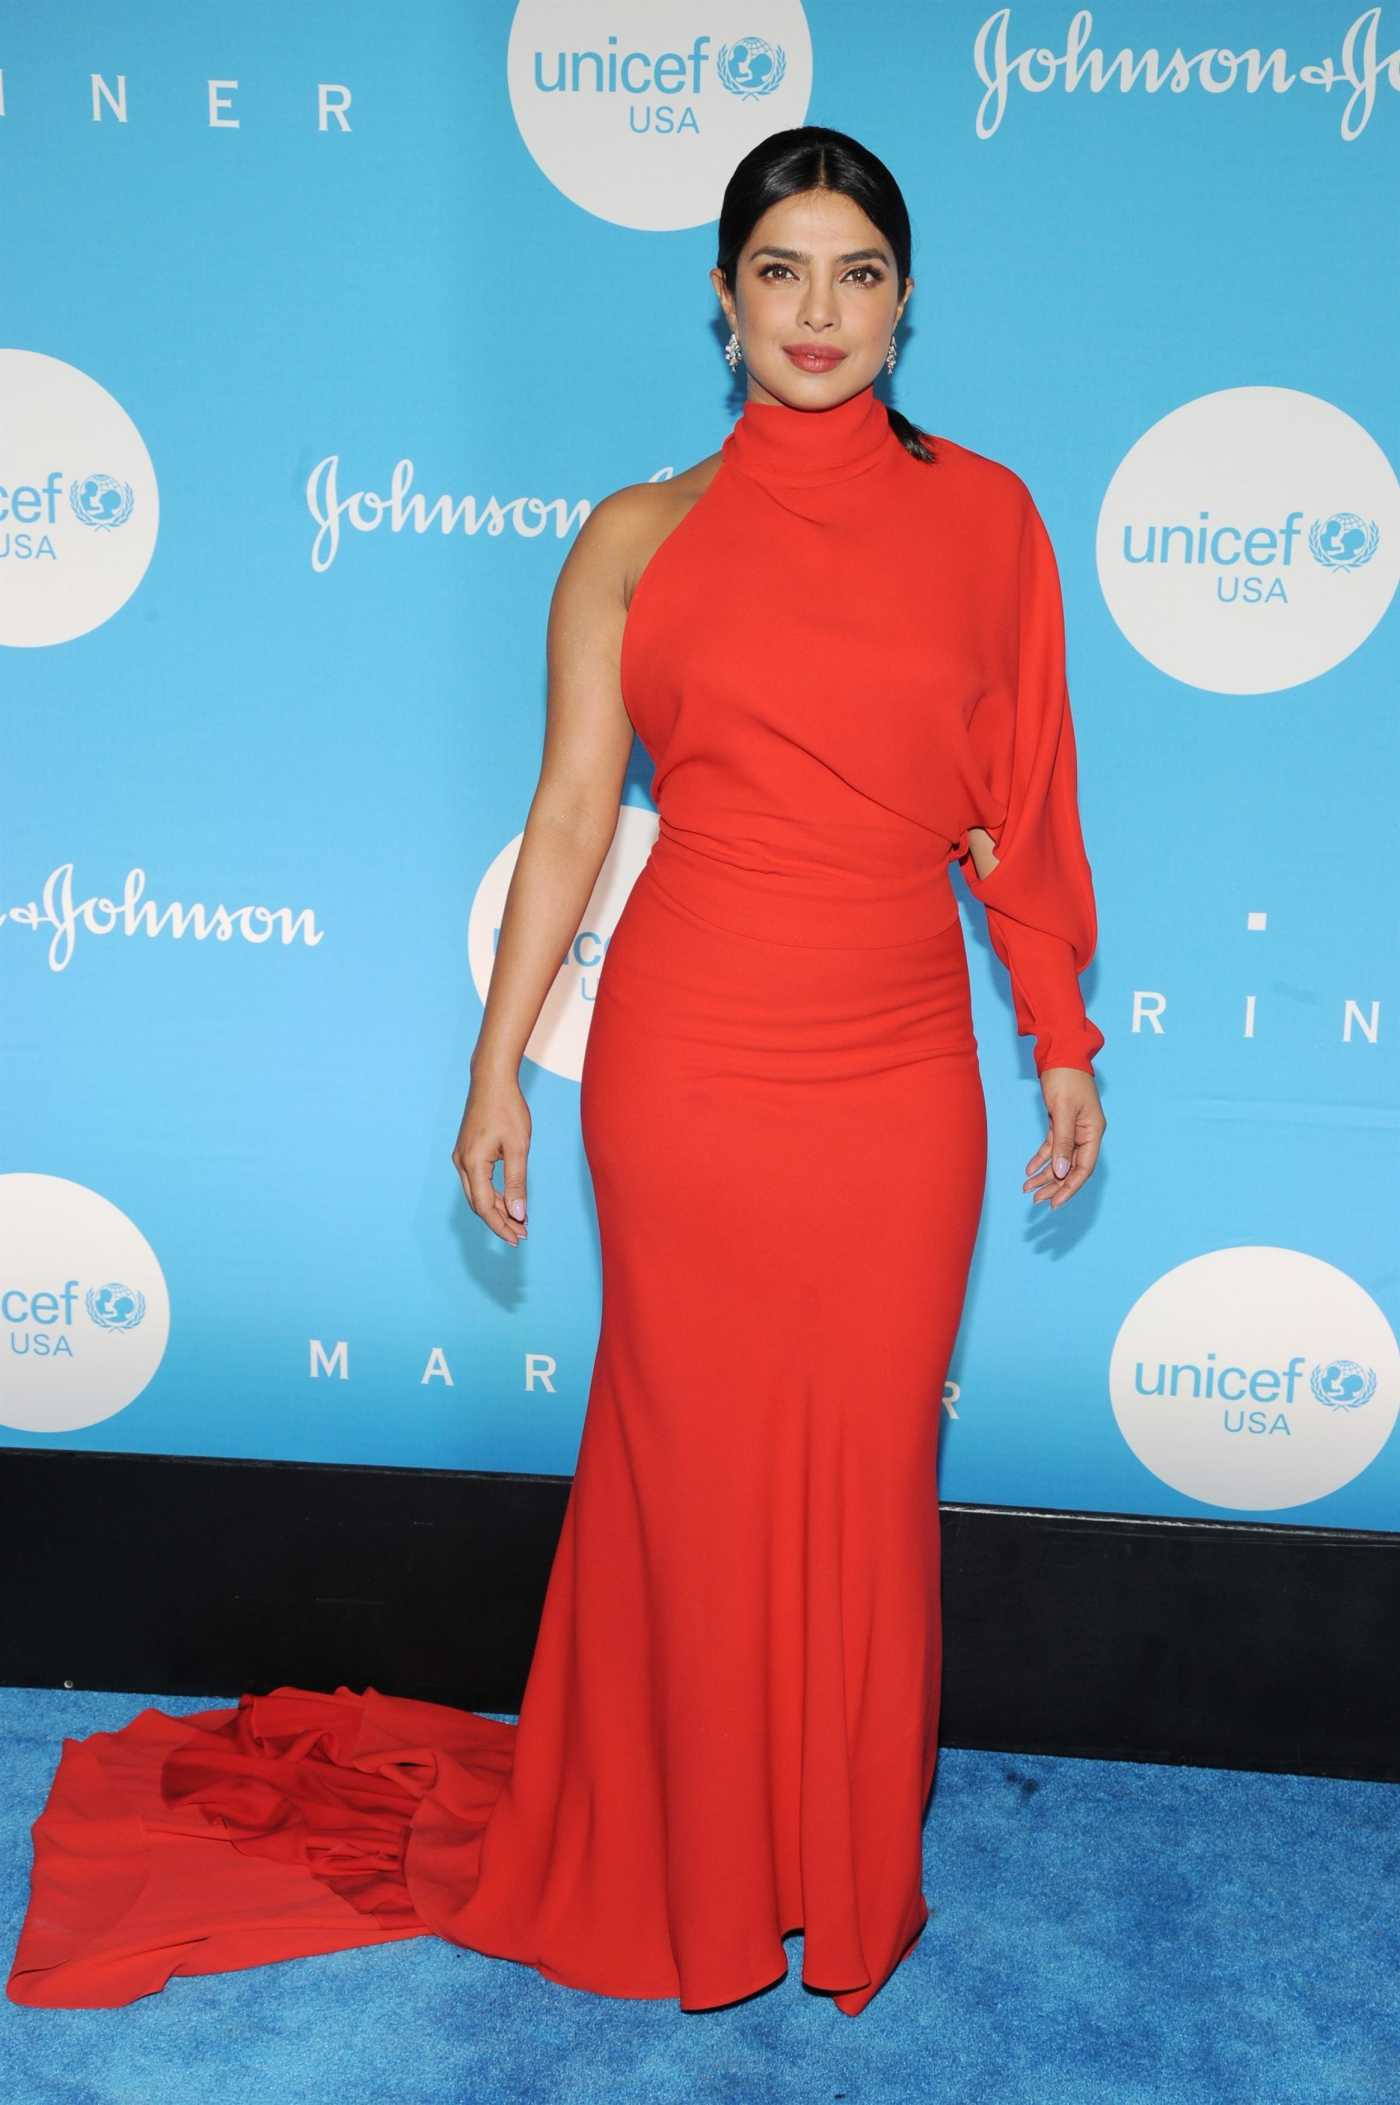 Priyanka Chopra Attends the 15th Annual UNICEF Snowflake Ball in New York City 12/03/2019